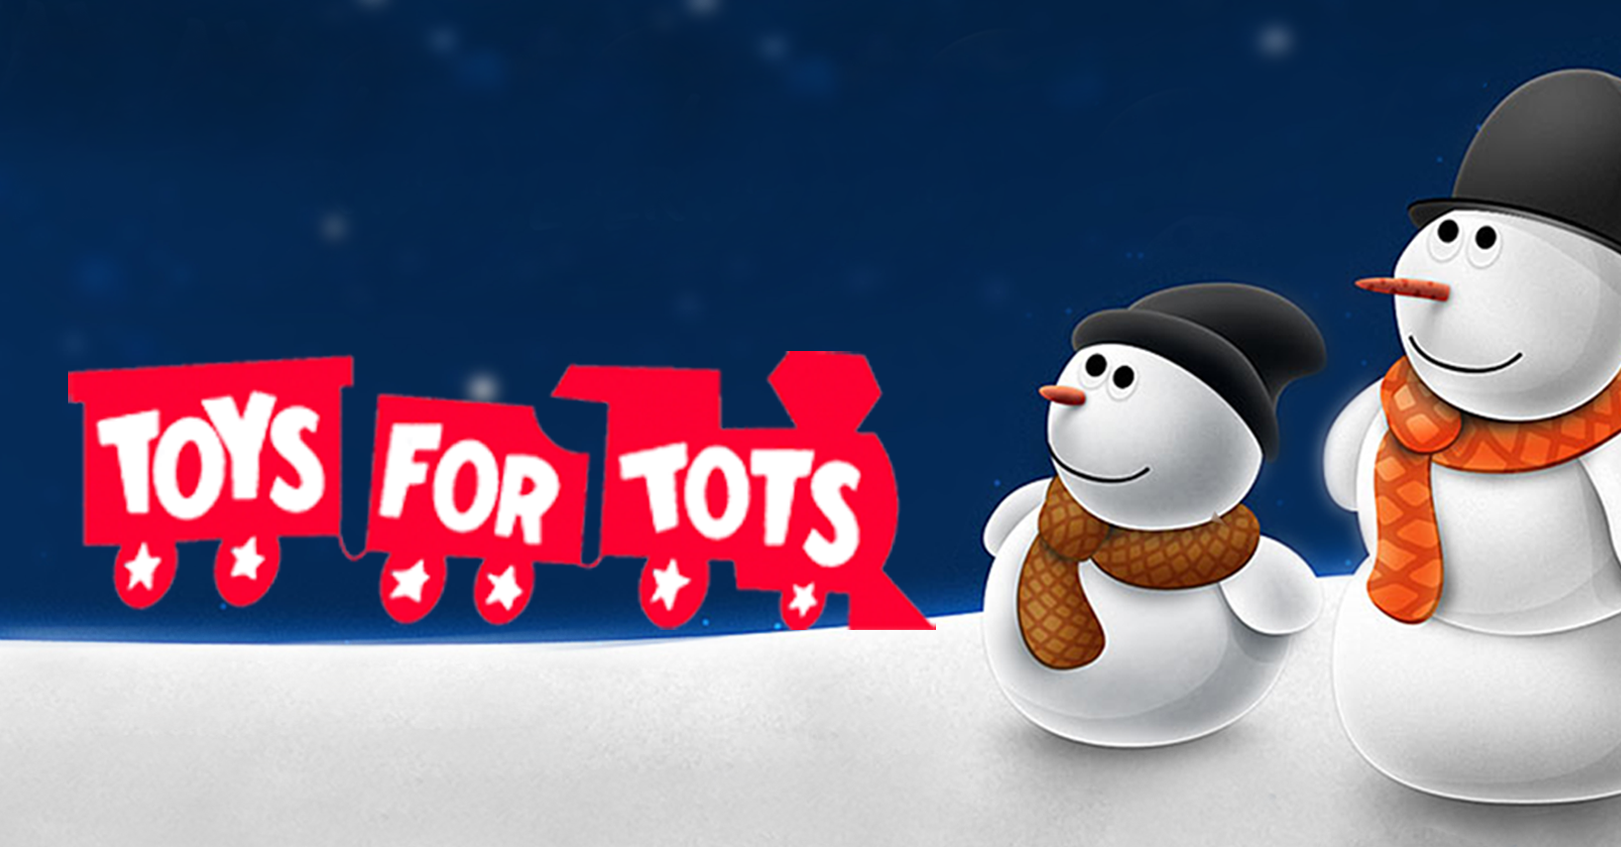 Toys For Tots Advertisement : Toys for tots